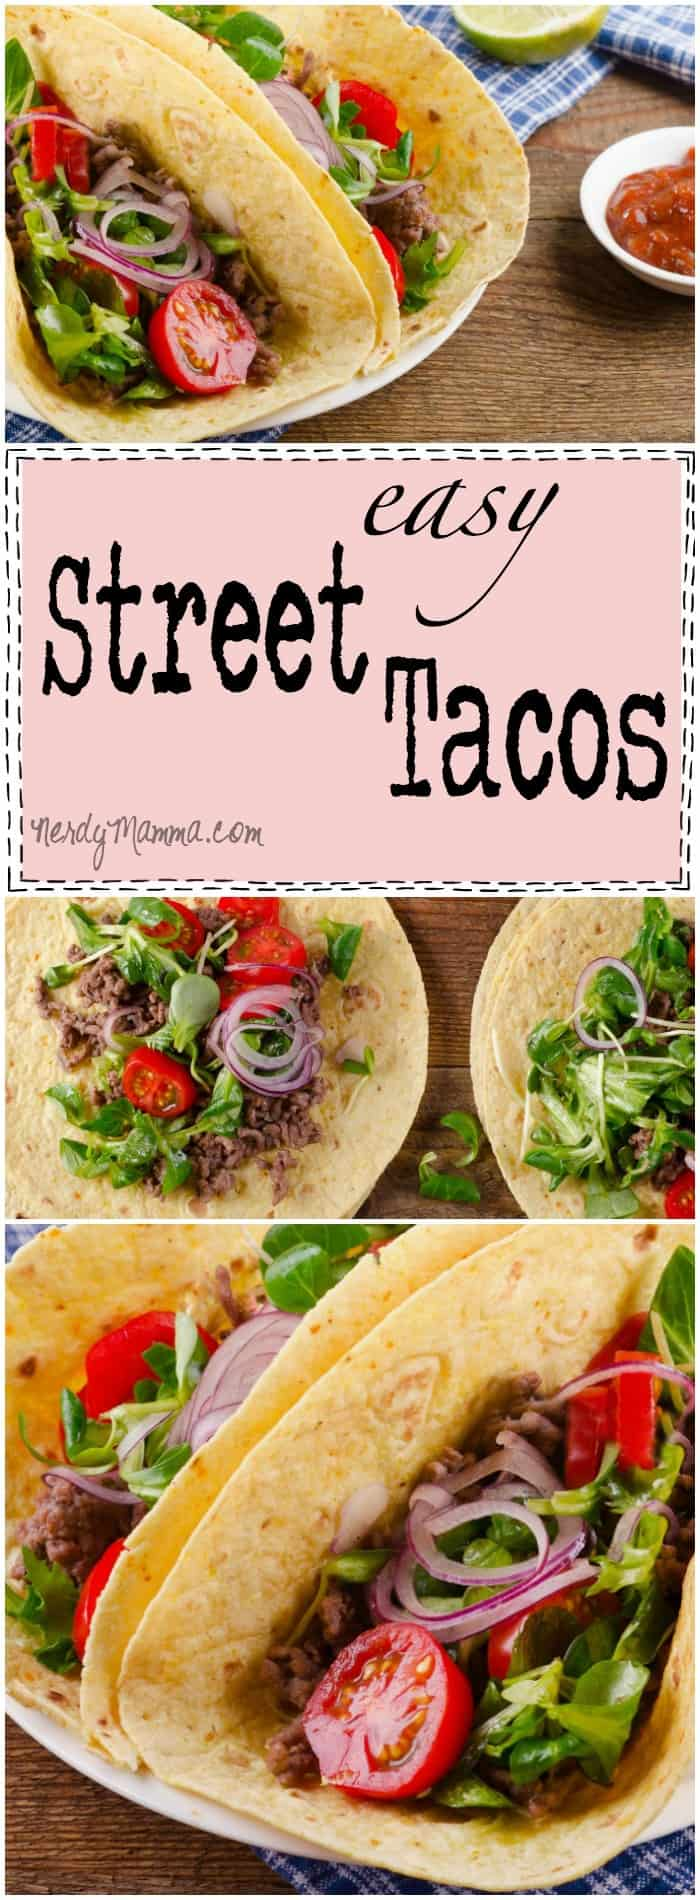 This recipe for easy street tacos! SO EASY. And mouthwatering. I love the idea of food truck tacos at home...